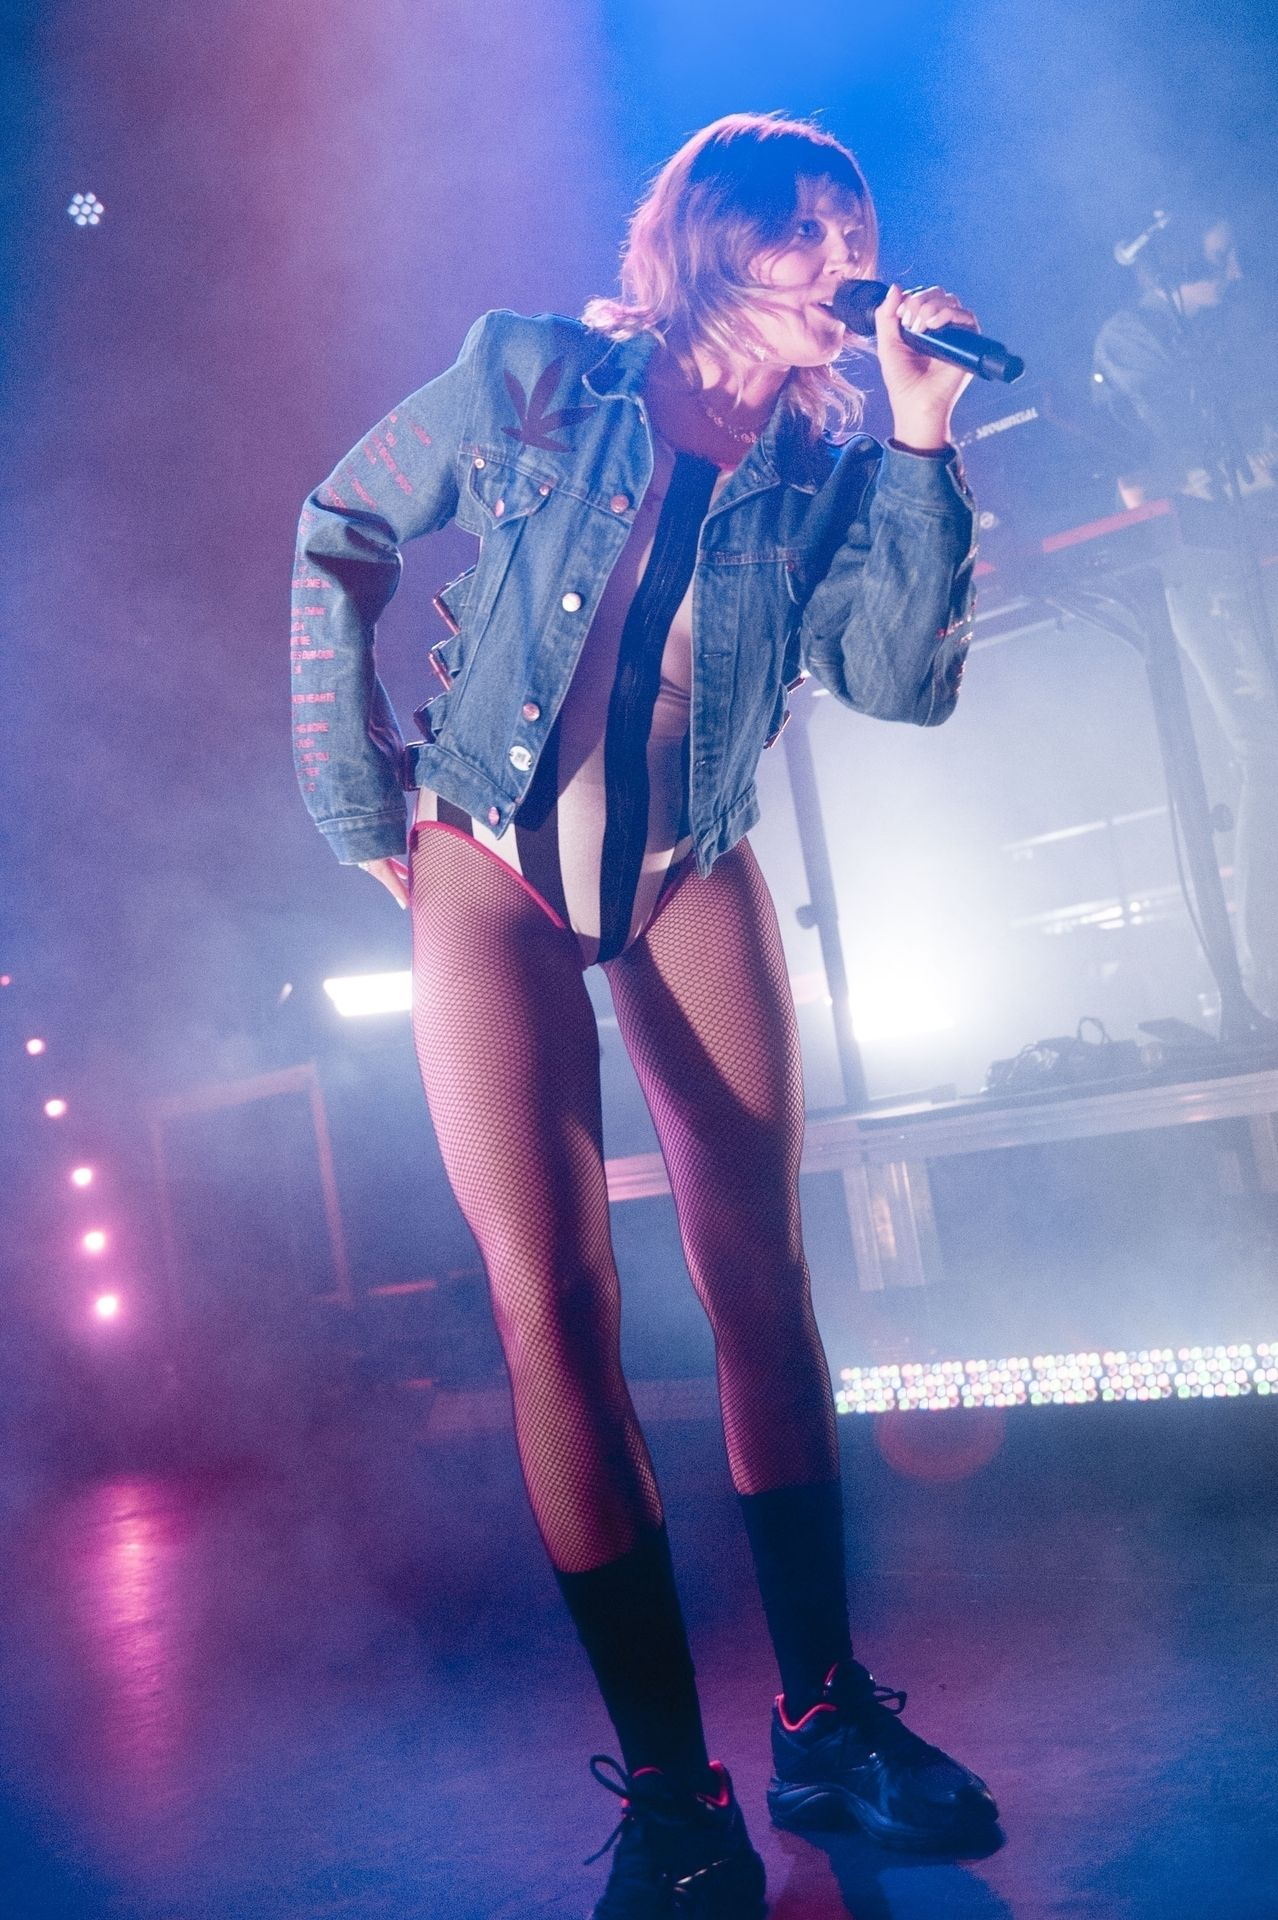 Tove Lo Is In Concert Performing Live At O2 Forum Kentish Town In London 0026